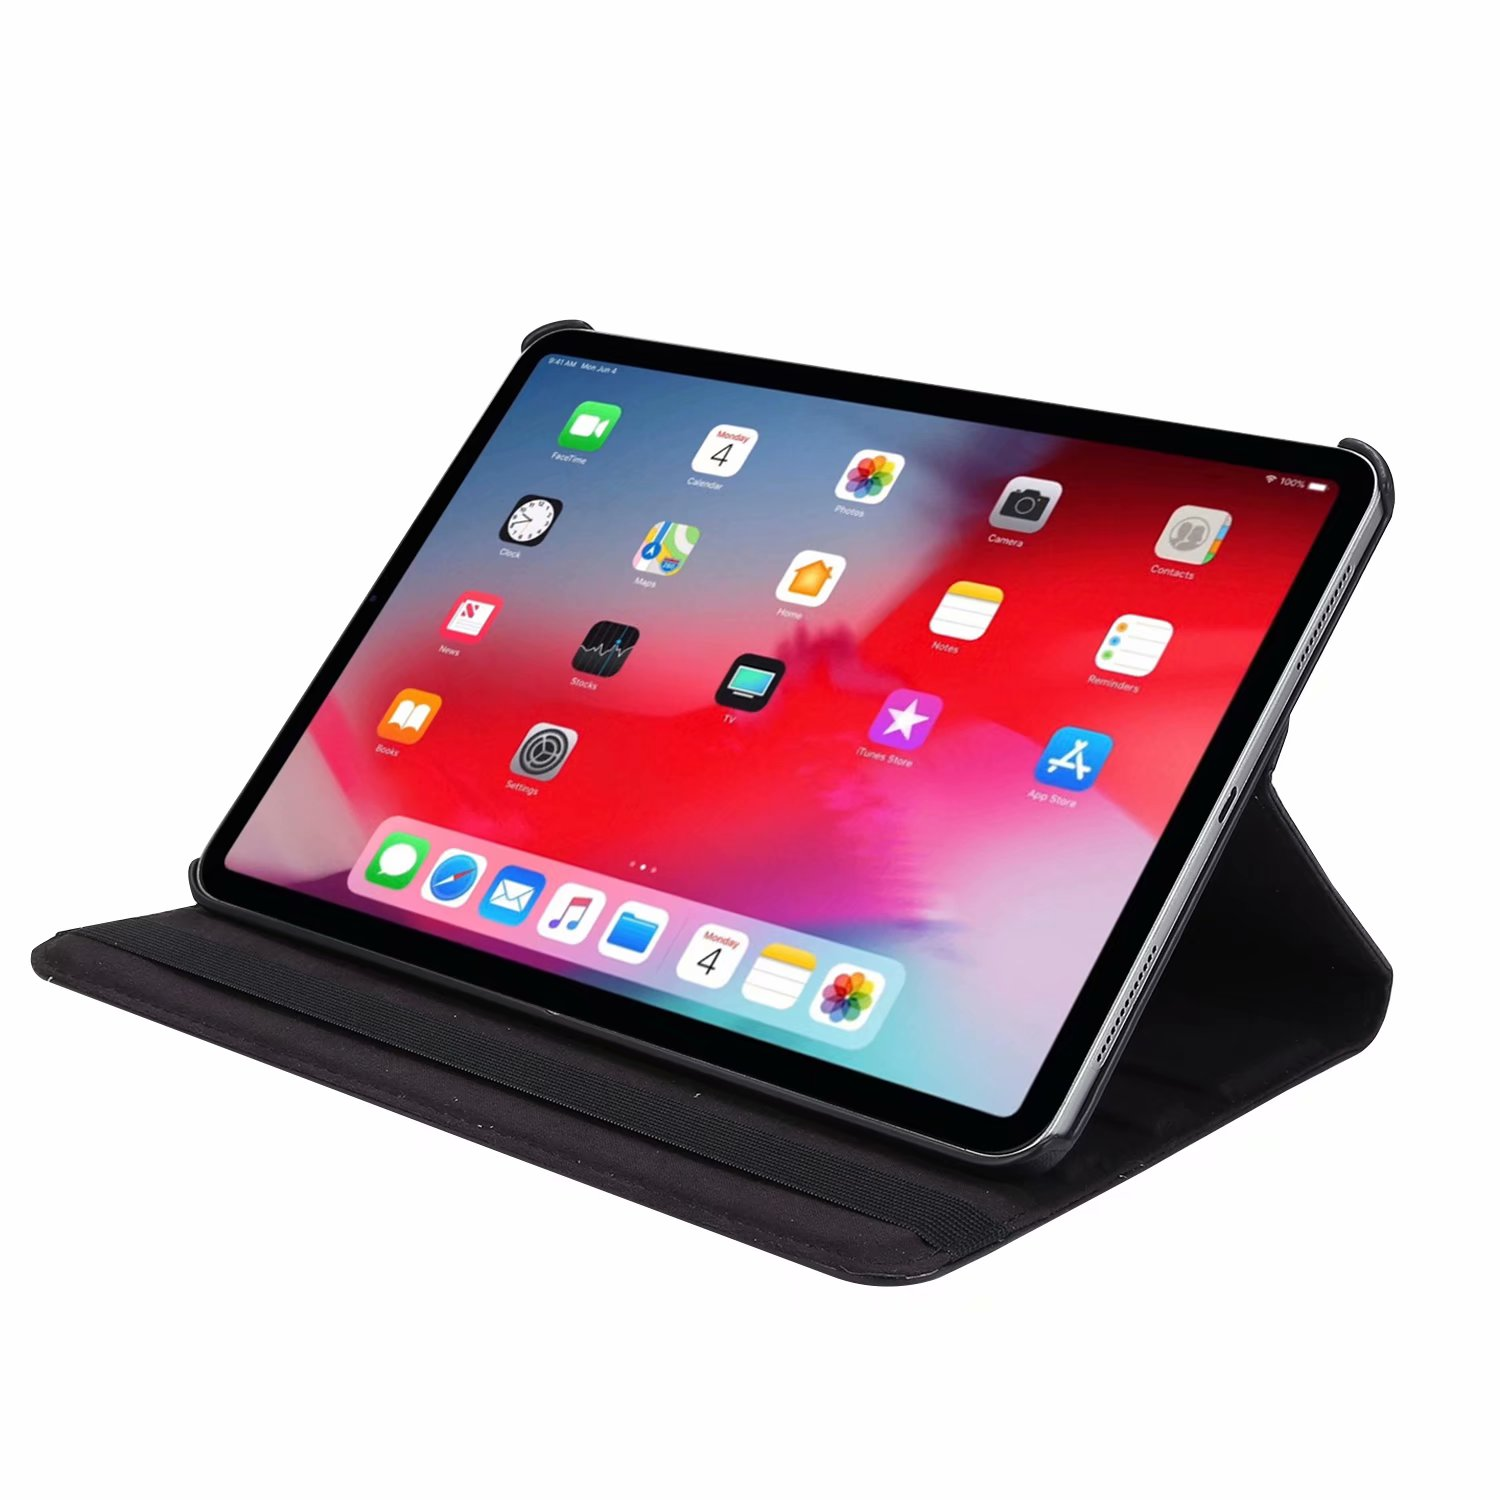 A1934 2021/2020/2018 A2013 Degree 11 A2230 Case Pro Cover iPad for A2068 A2228 360 A1980